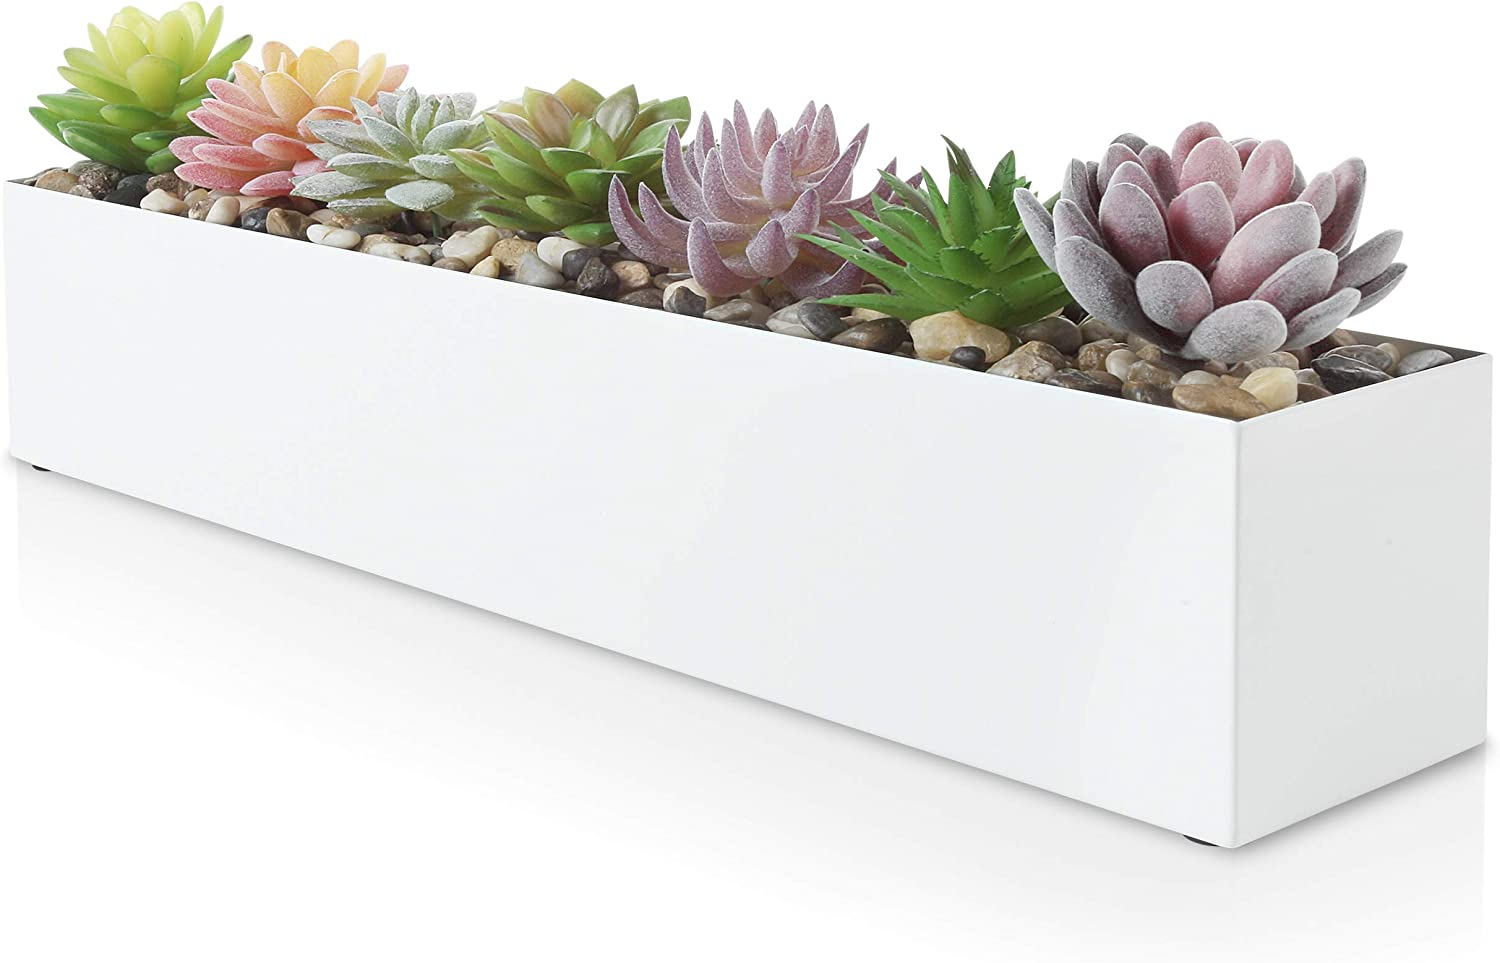 Modern White Rectangle Planter Box 16 Metal Planter Perfect as a Succulent Planter Narrow Planter Box for Table or Window Sill Planters Indoor Rectangular Stainless Steel Long Planter